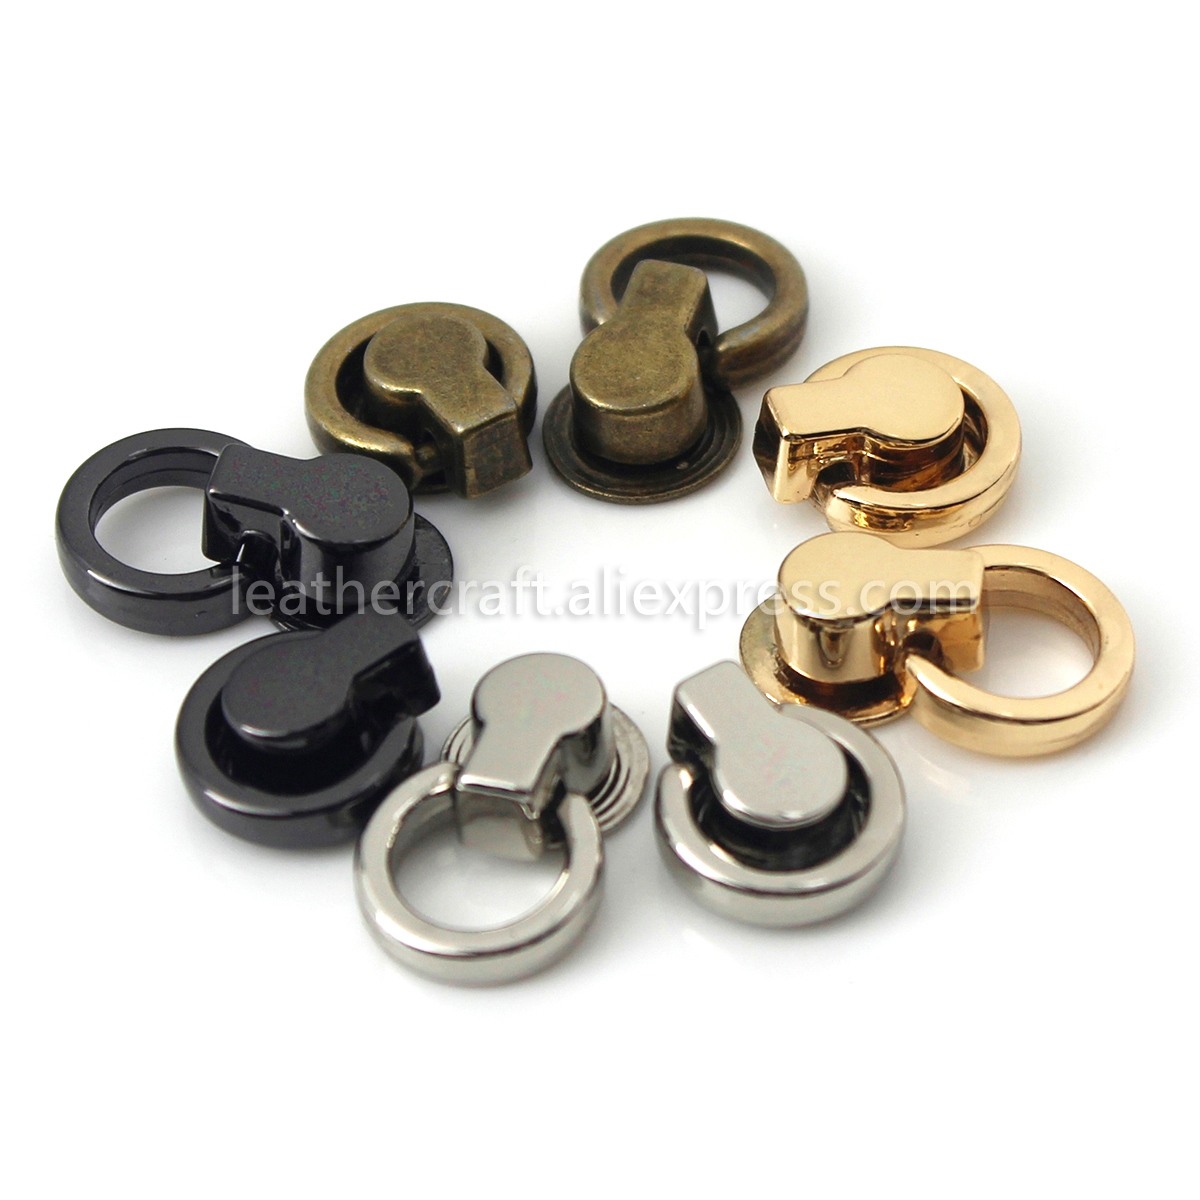 1x Metal Double-Ring Bag Hanger Gusset Clamp Buckle Clip Leather Craft Hardware